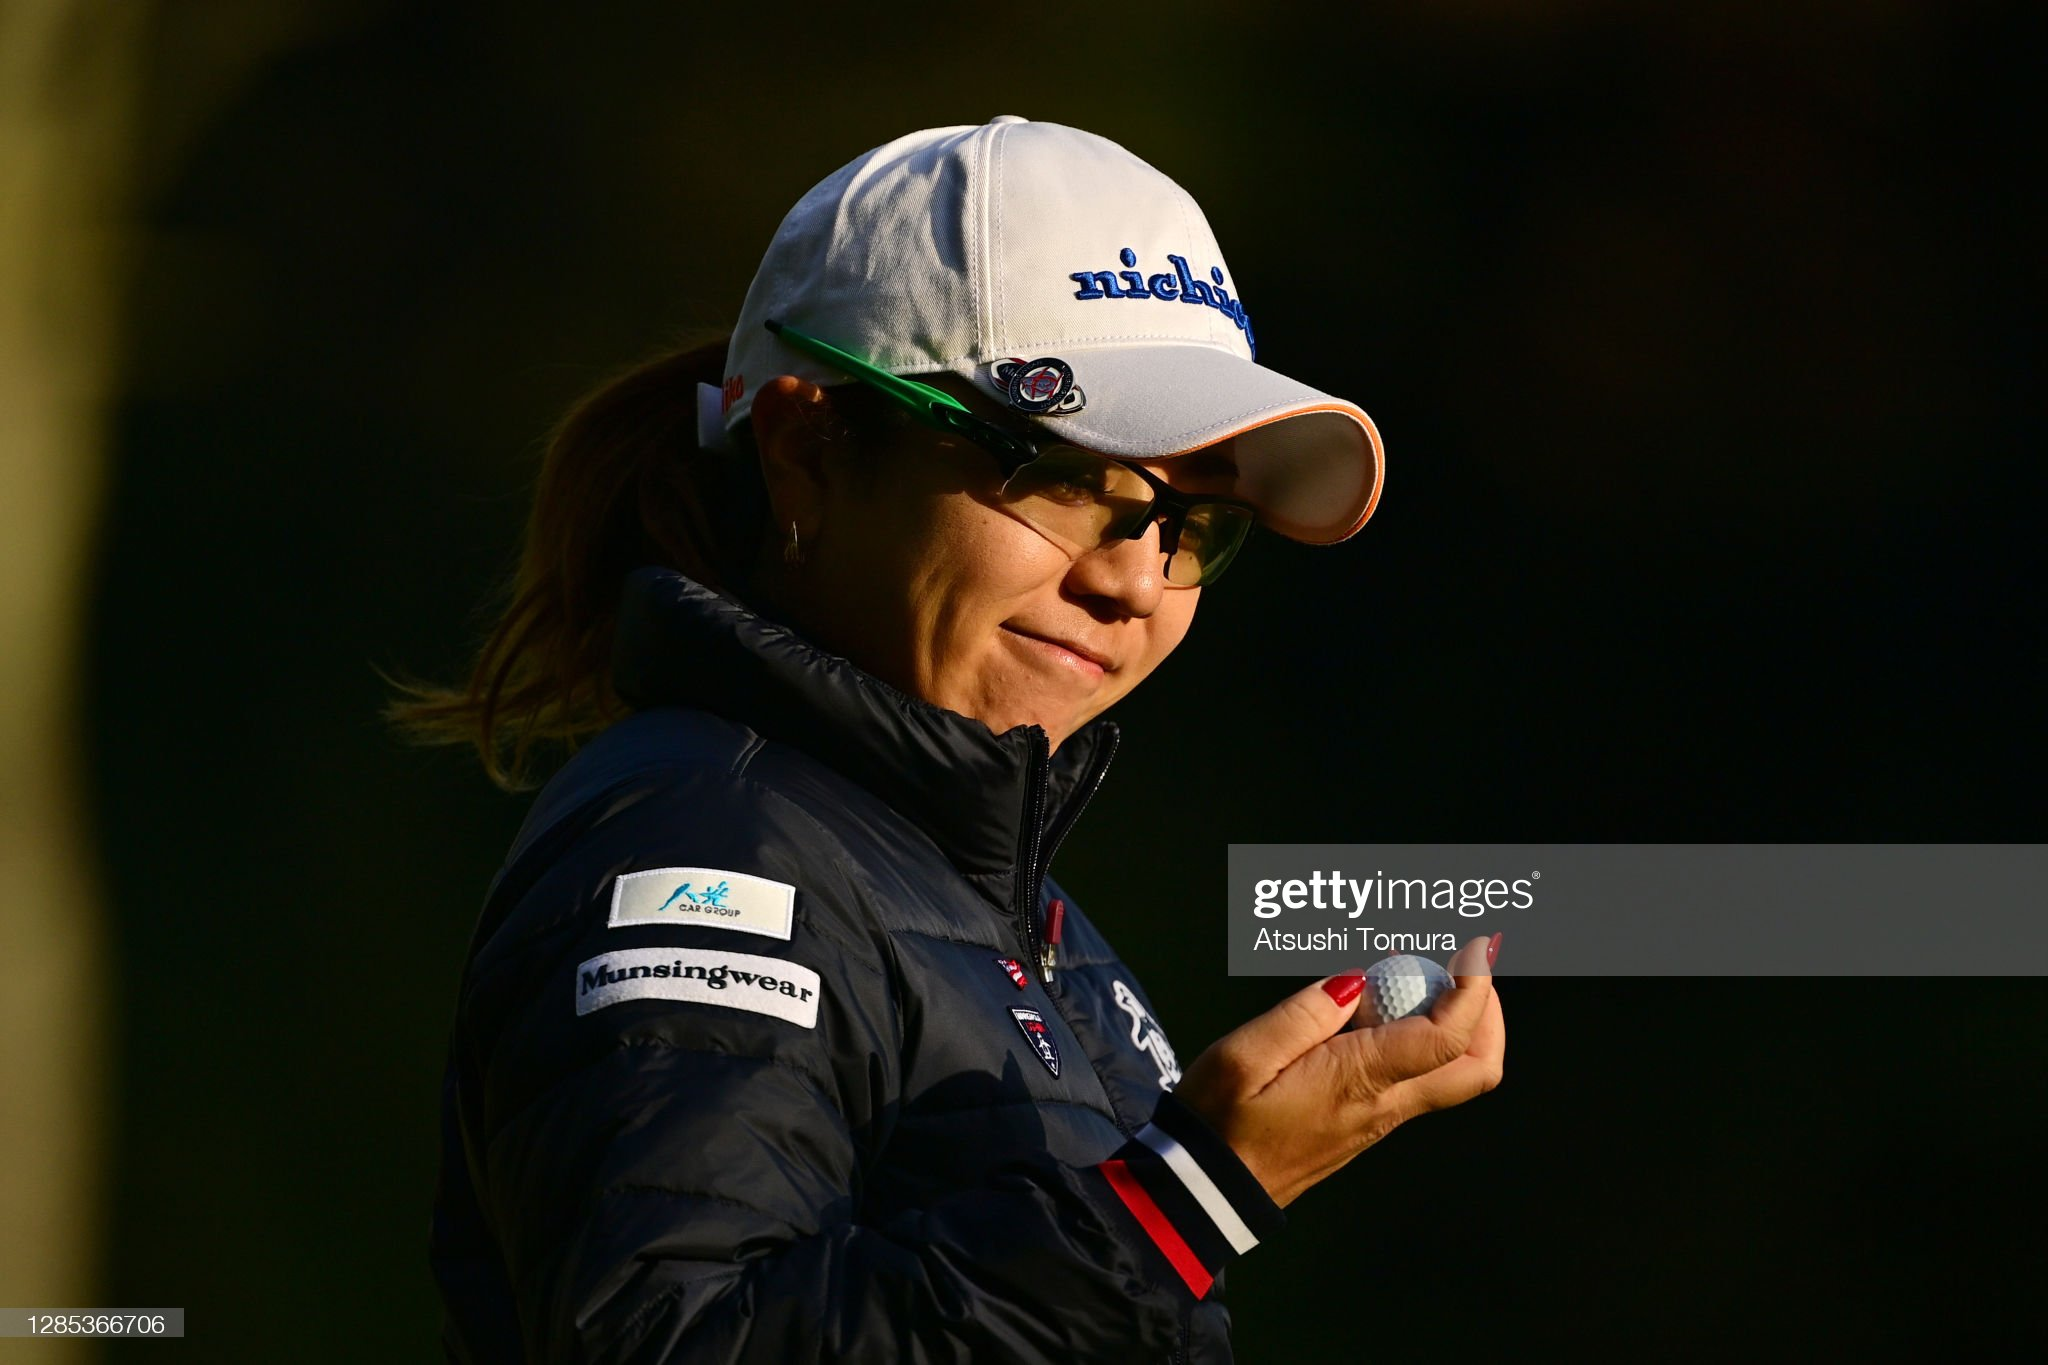 https://media.gettyimages.com/photos/mika-miyazato-of-japan-smiles-after-the-birdie-on-the-1st-green-the-picture-id1285366706?s=2048x2048